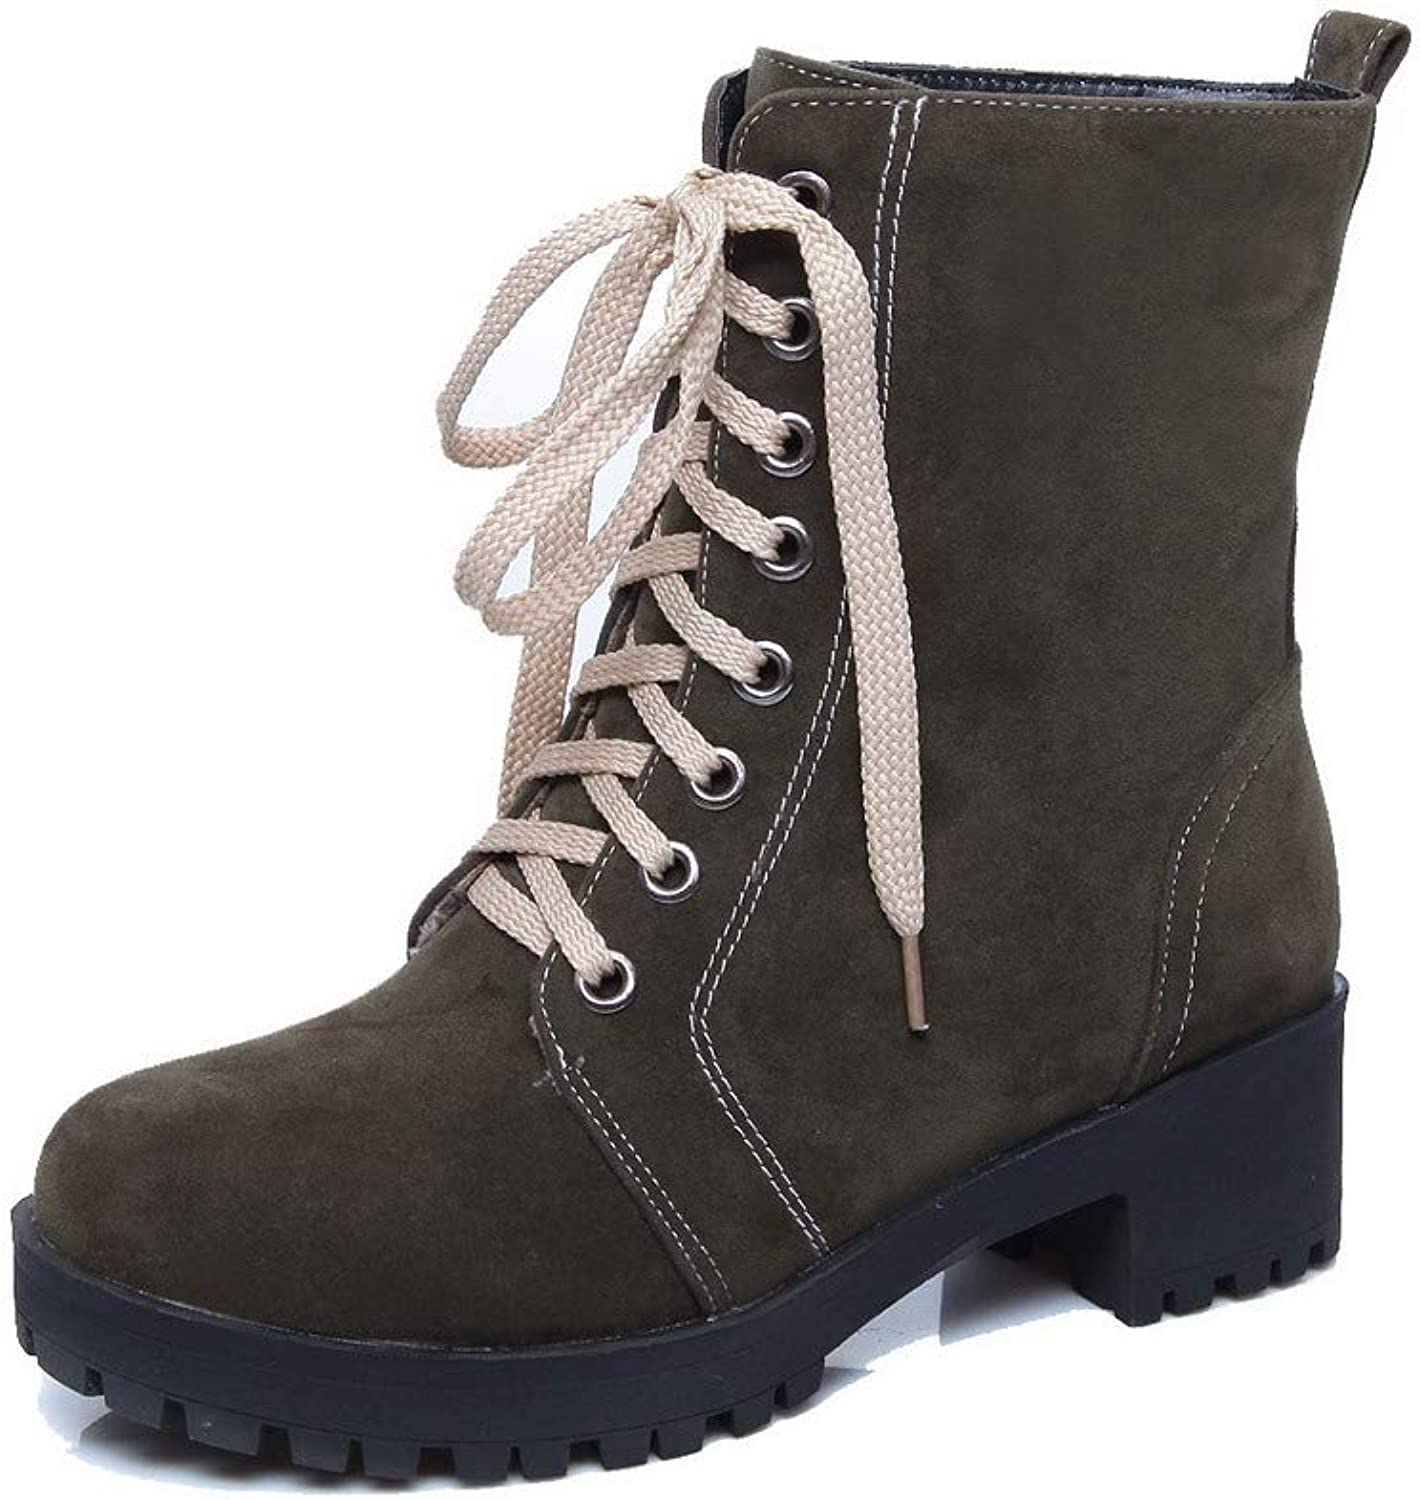 AmoonyFashion Women's Lace-Up Round-Toe Kitten-Heels Frosted Mid-Calf Boots, BUTXT024202